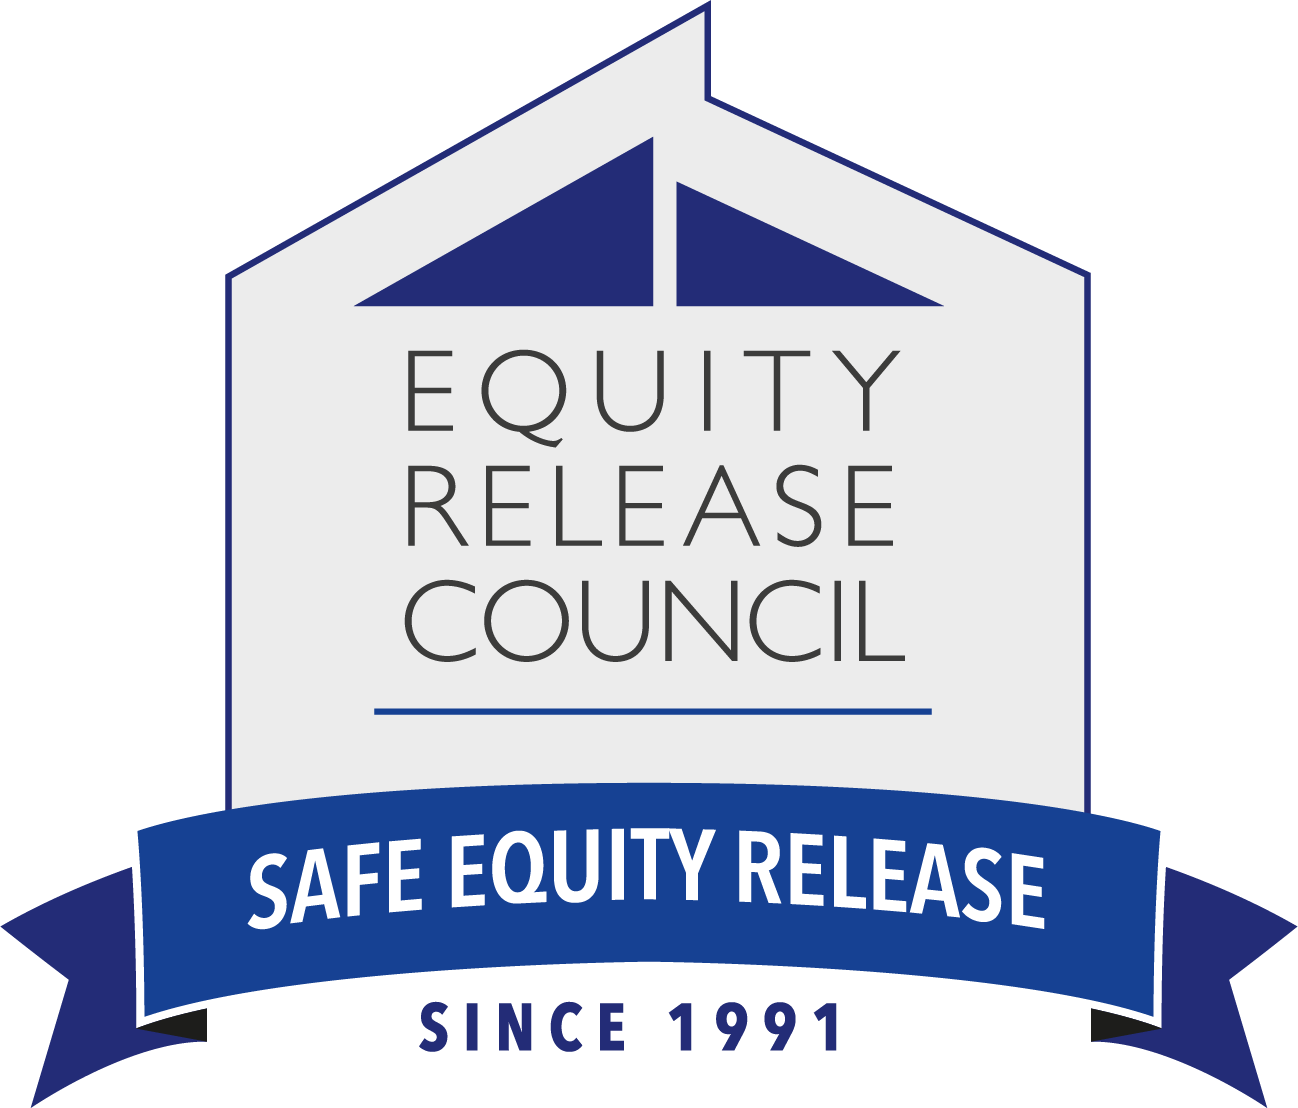 Membership doubles in two years for Equity Release Council